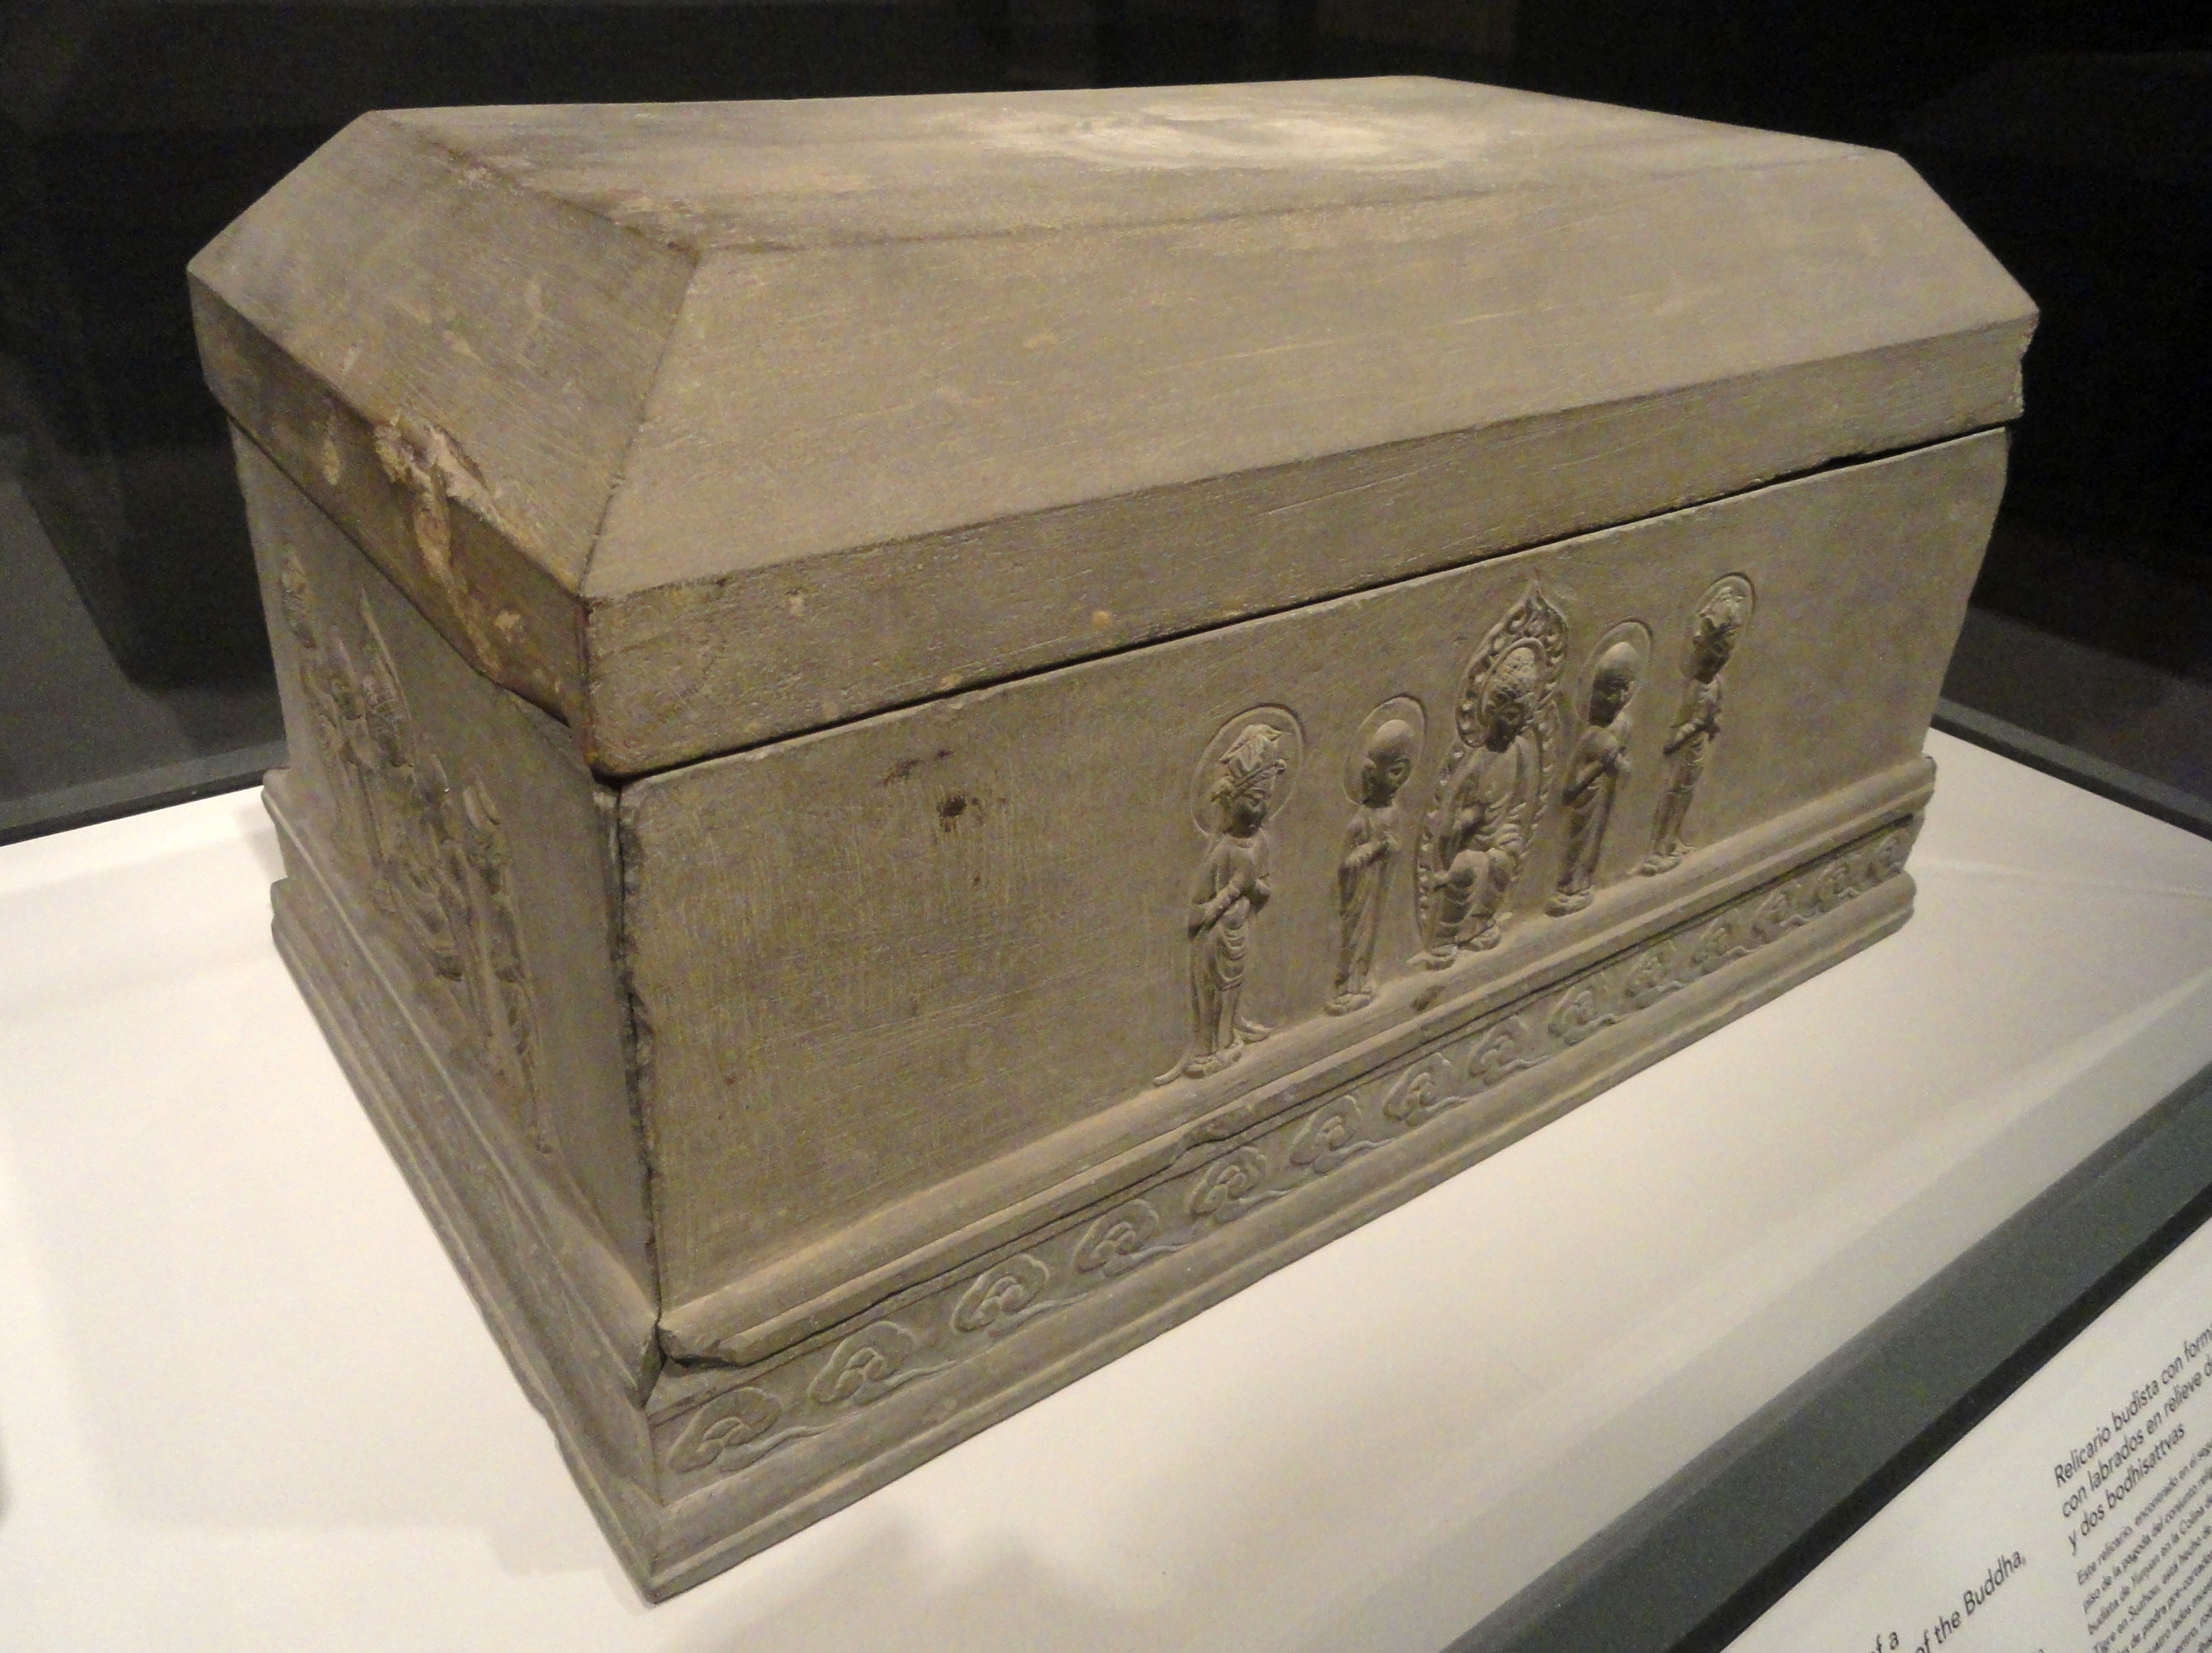 filebuddhist reliquary in the shape of a funerary casket